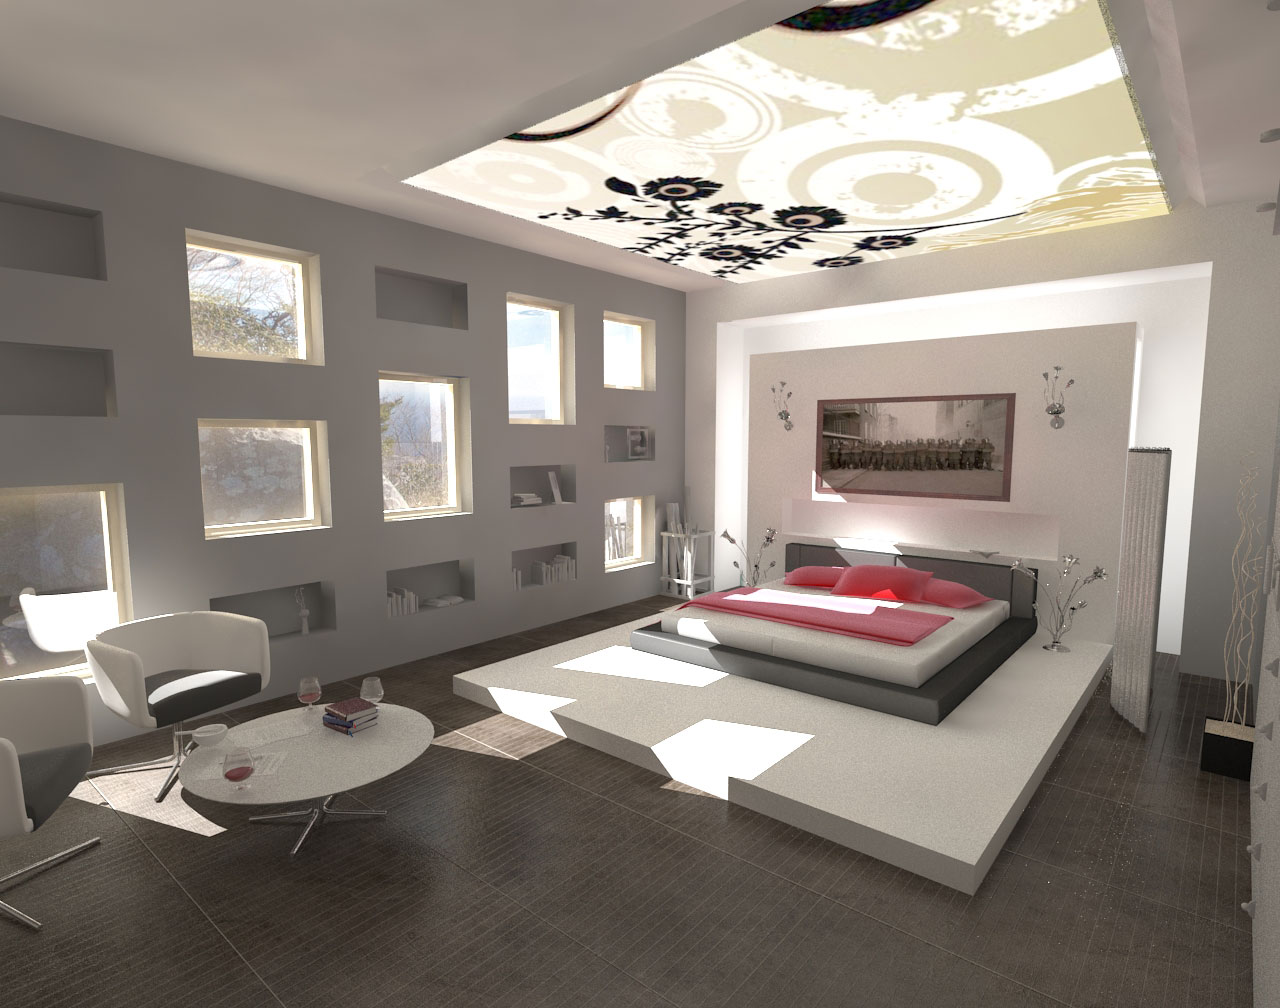 Decorations Minimalist Design Modern Bedroom Interior For Modern Bedroom  Interior Design ...